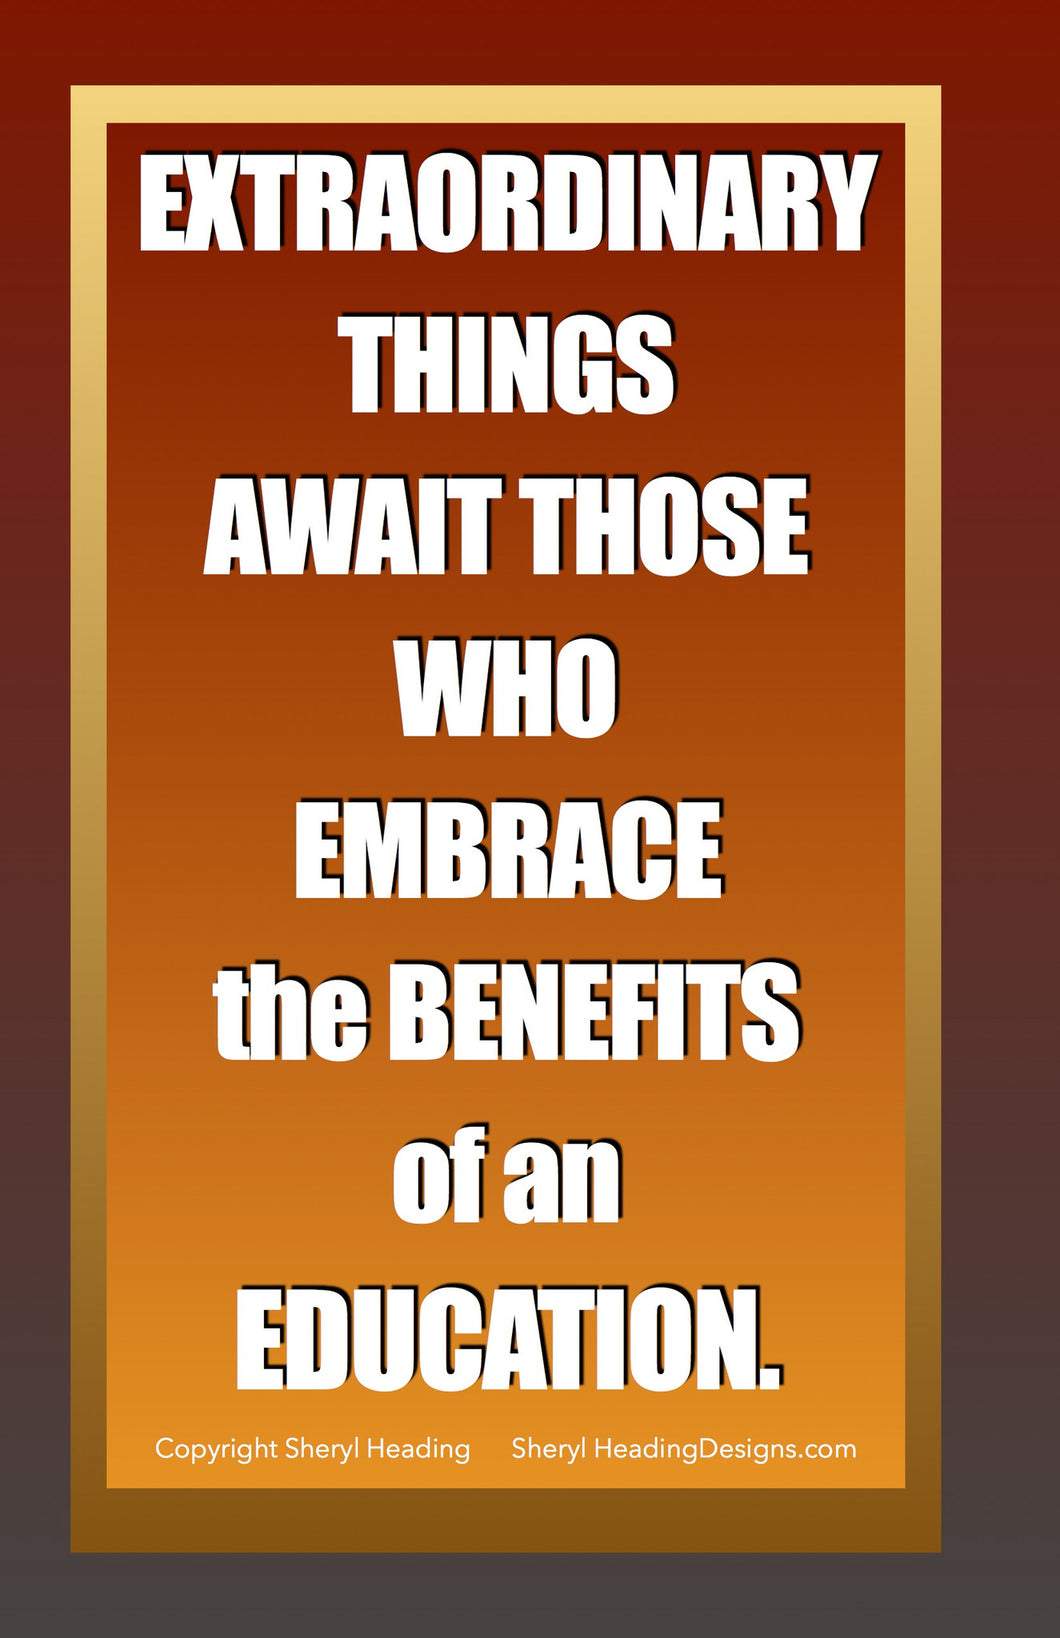 Extraordinary Things Await Those Who Embrace the Benefits of A Good Education Poster - Sheryl Heading Designs